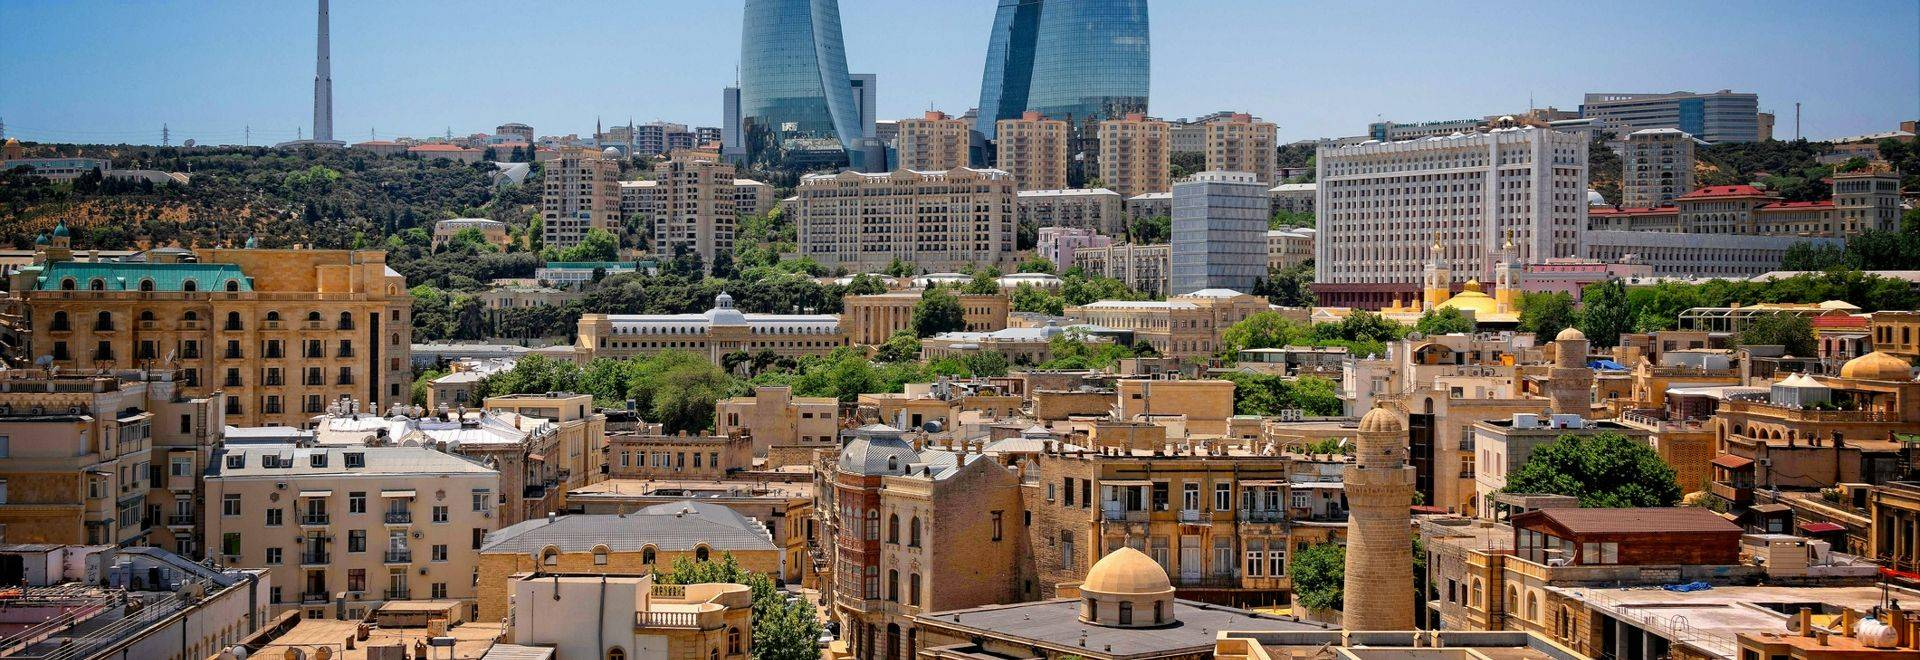 GettyImages 986764046 Baku Old Town With Flame Towers In The Background, Azerbaijan